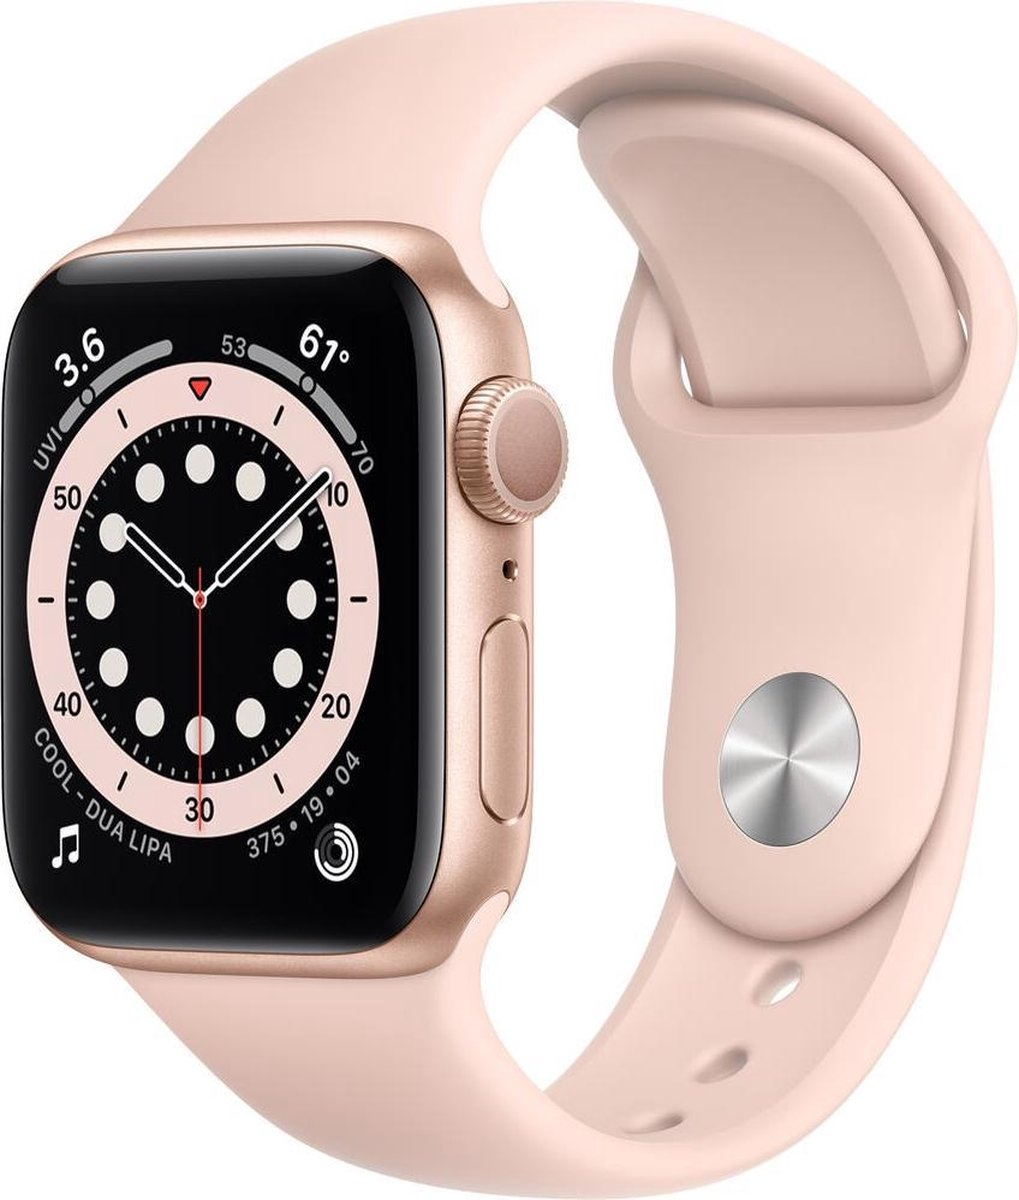 Apple Watch Series 6 – Gerenoveerd door SUPREME MOBILE – A GRADE – 40 mm – GPS – Goud / Roze band